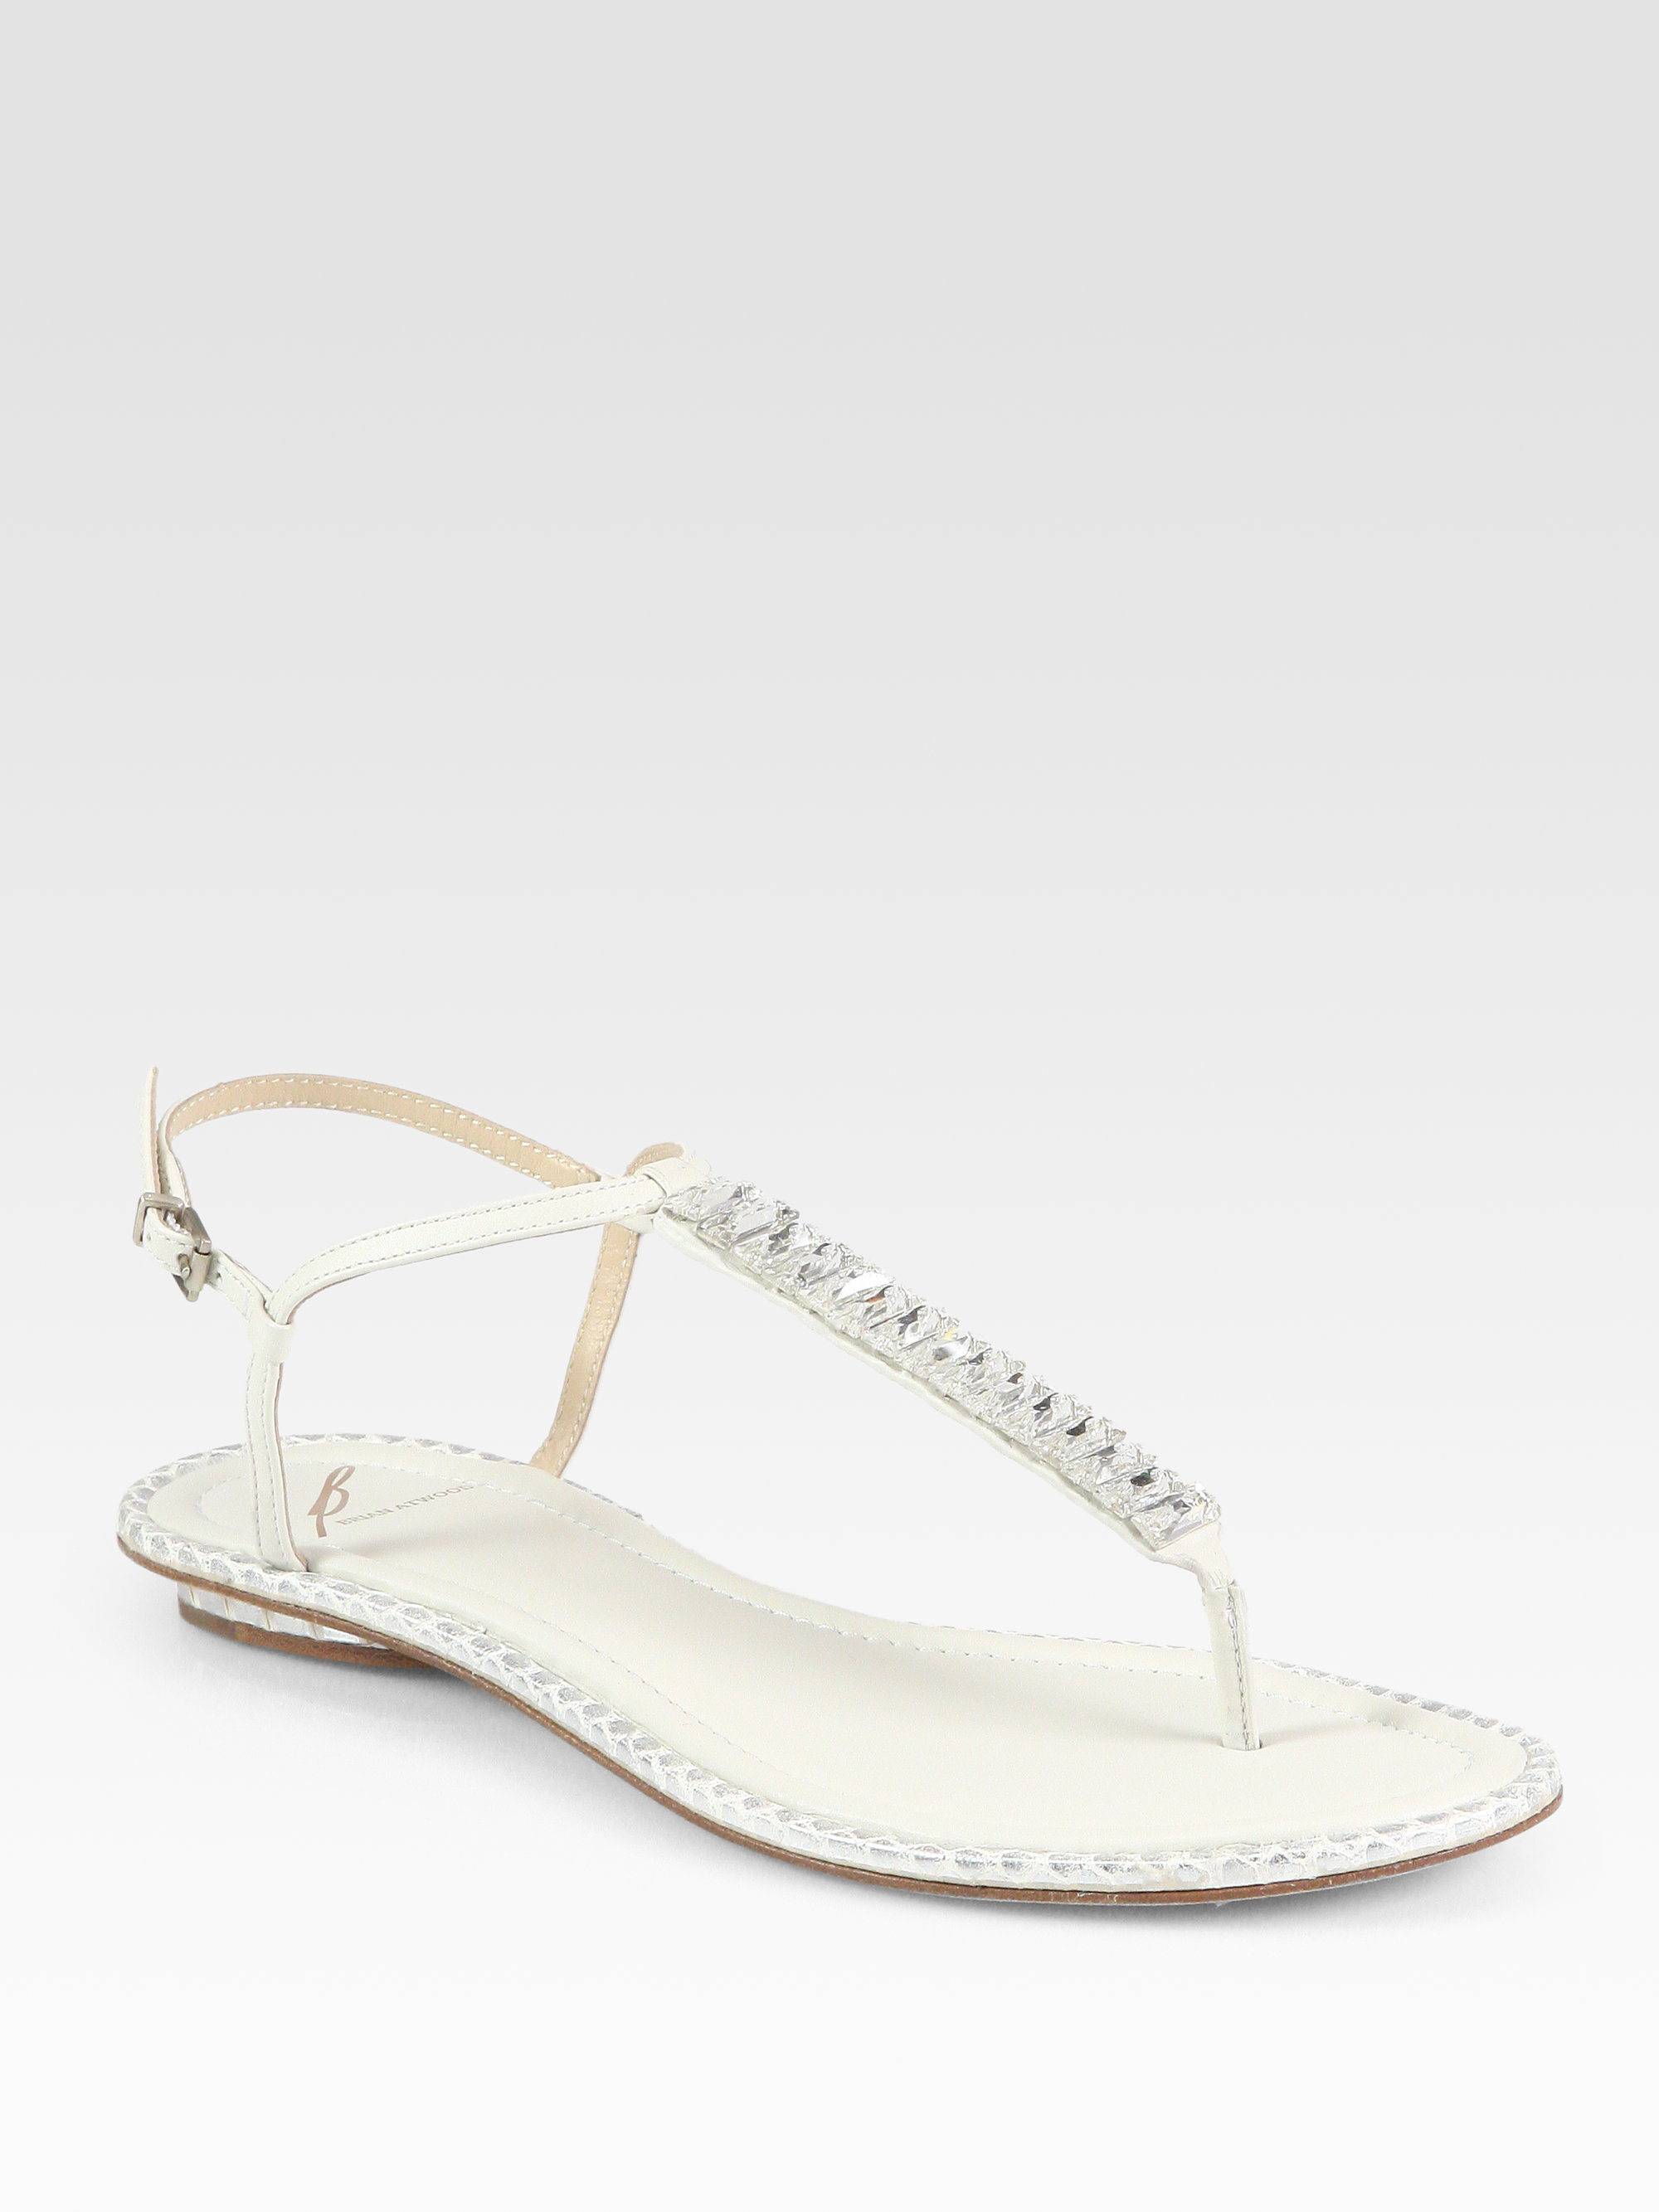 B Brian Atwood Jeweled Leather Thong Sandals In White Lyst